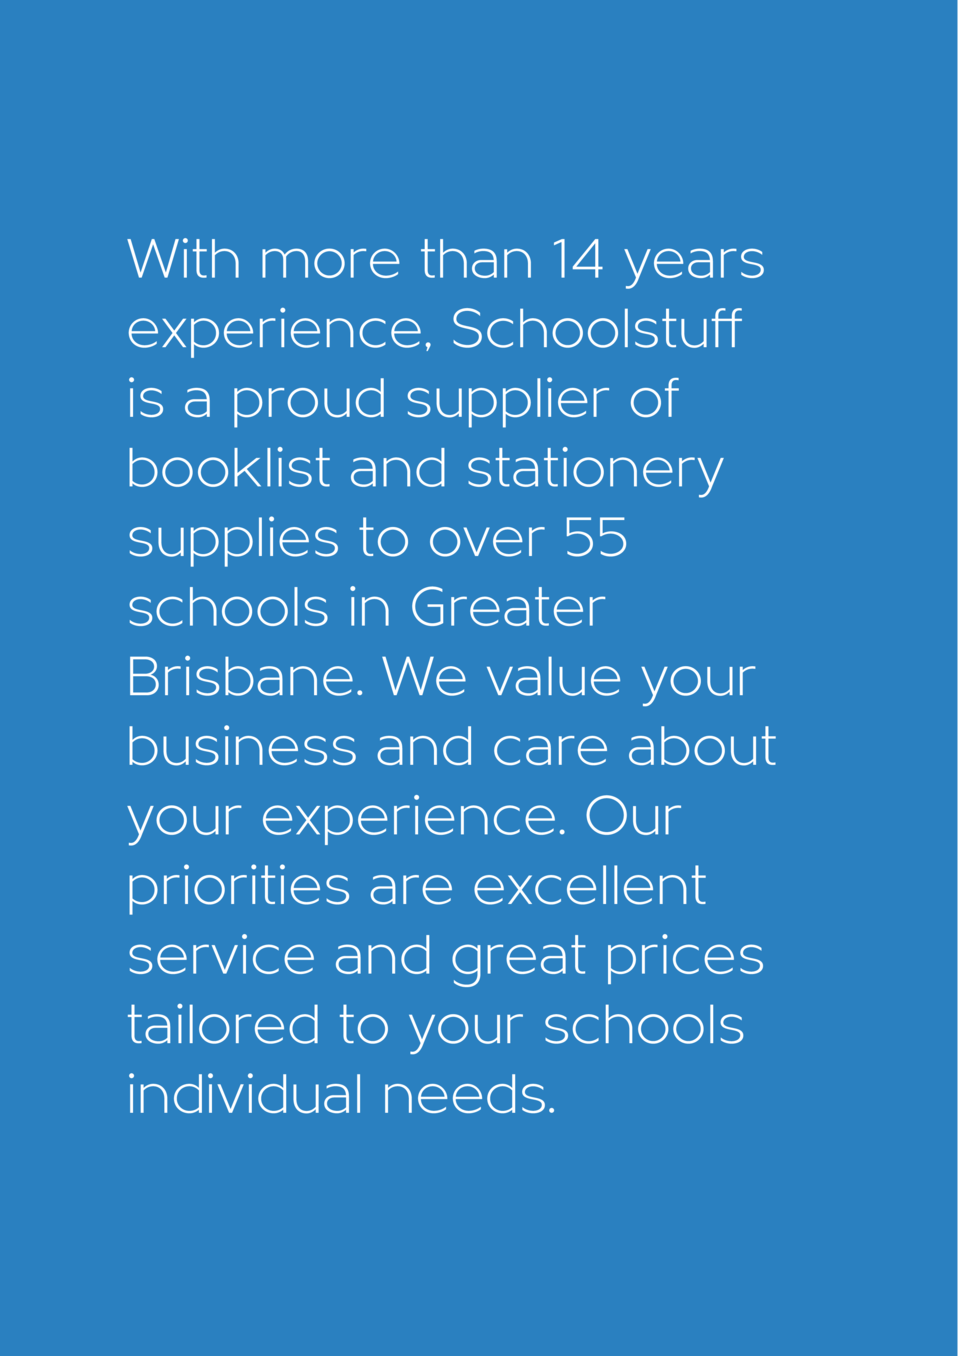 With more than 14 years experience, Schoolstuff is a proud supplier of booklist and stationery supplies to over 55 schools...